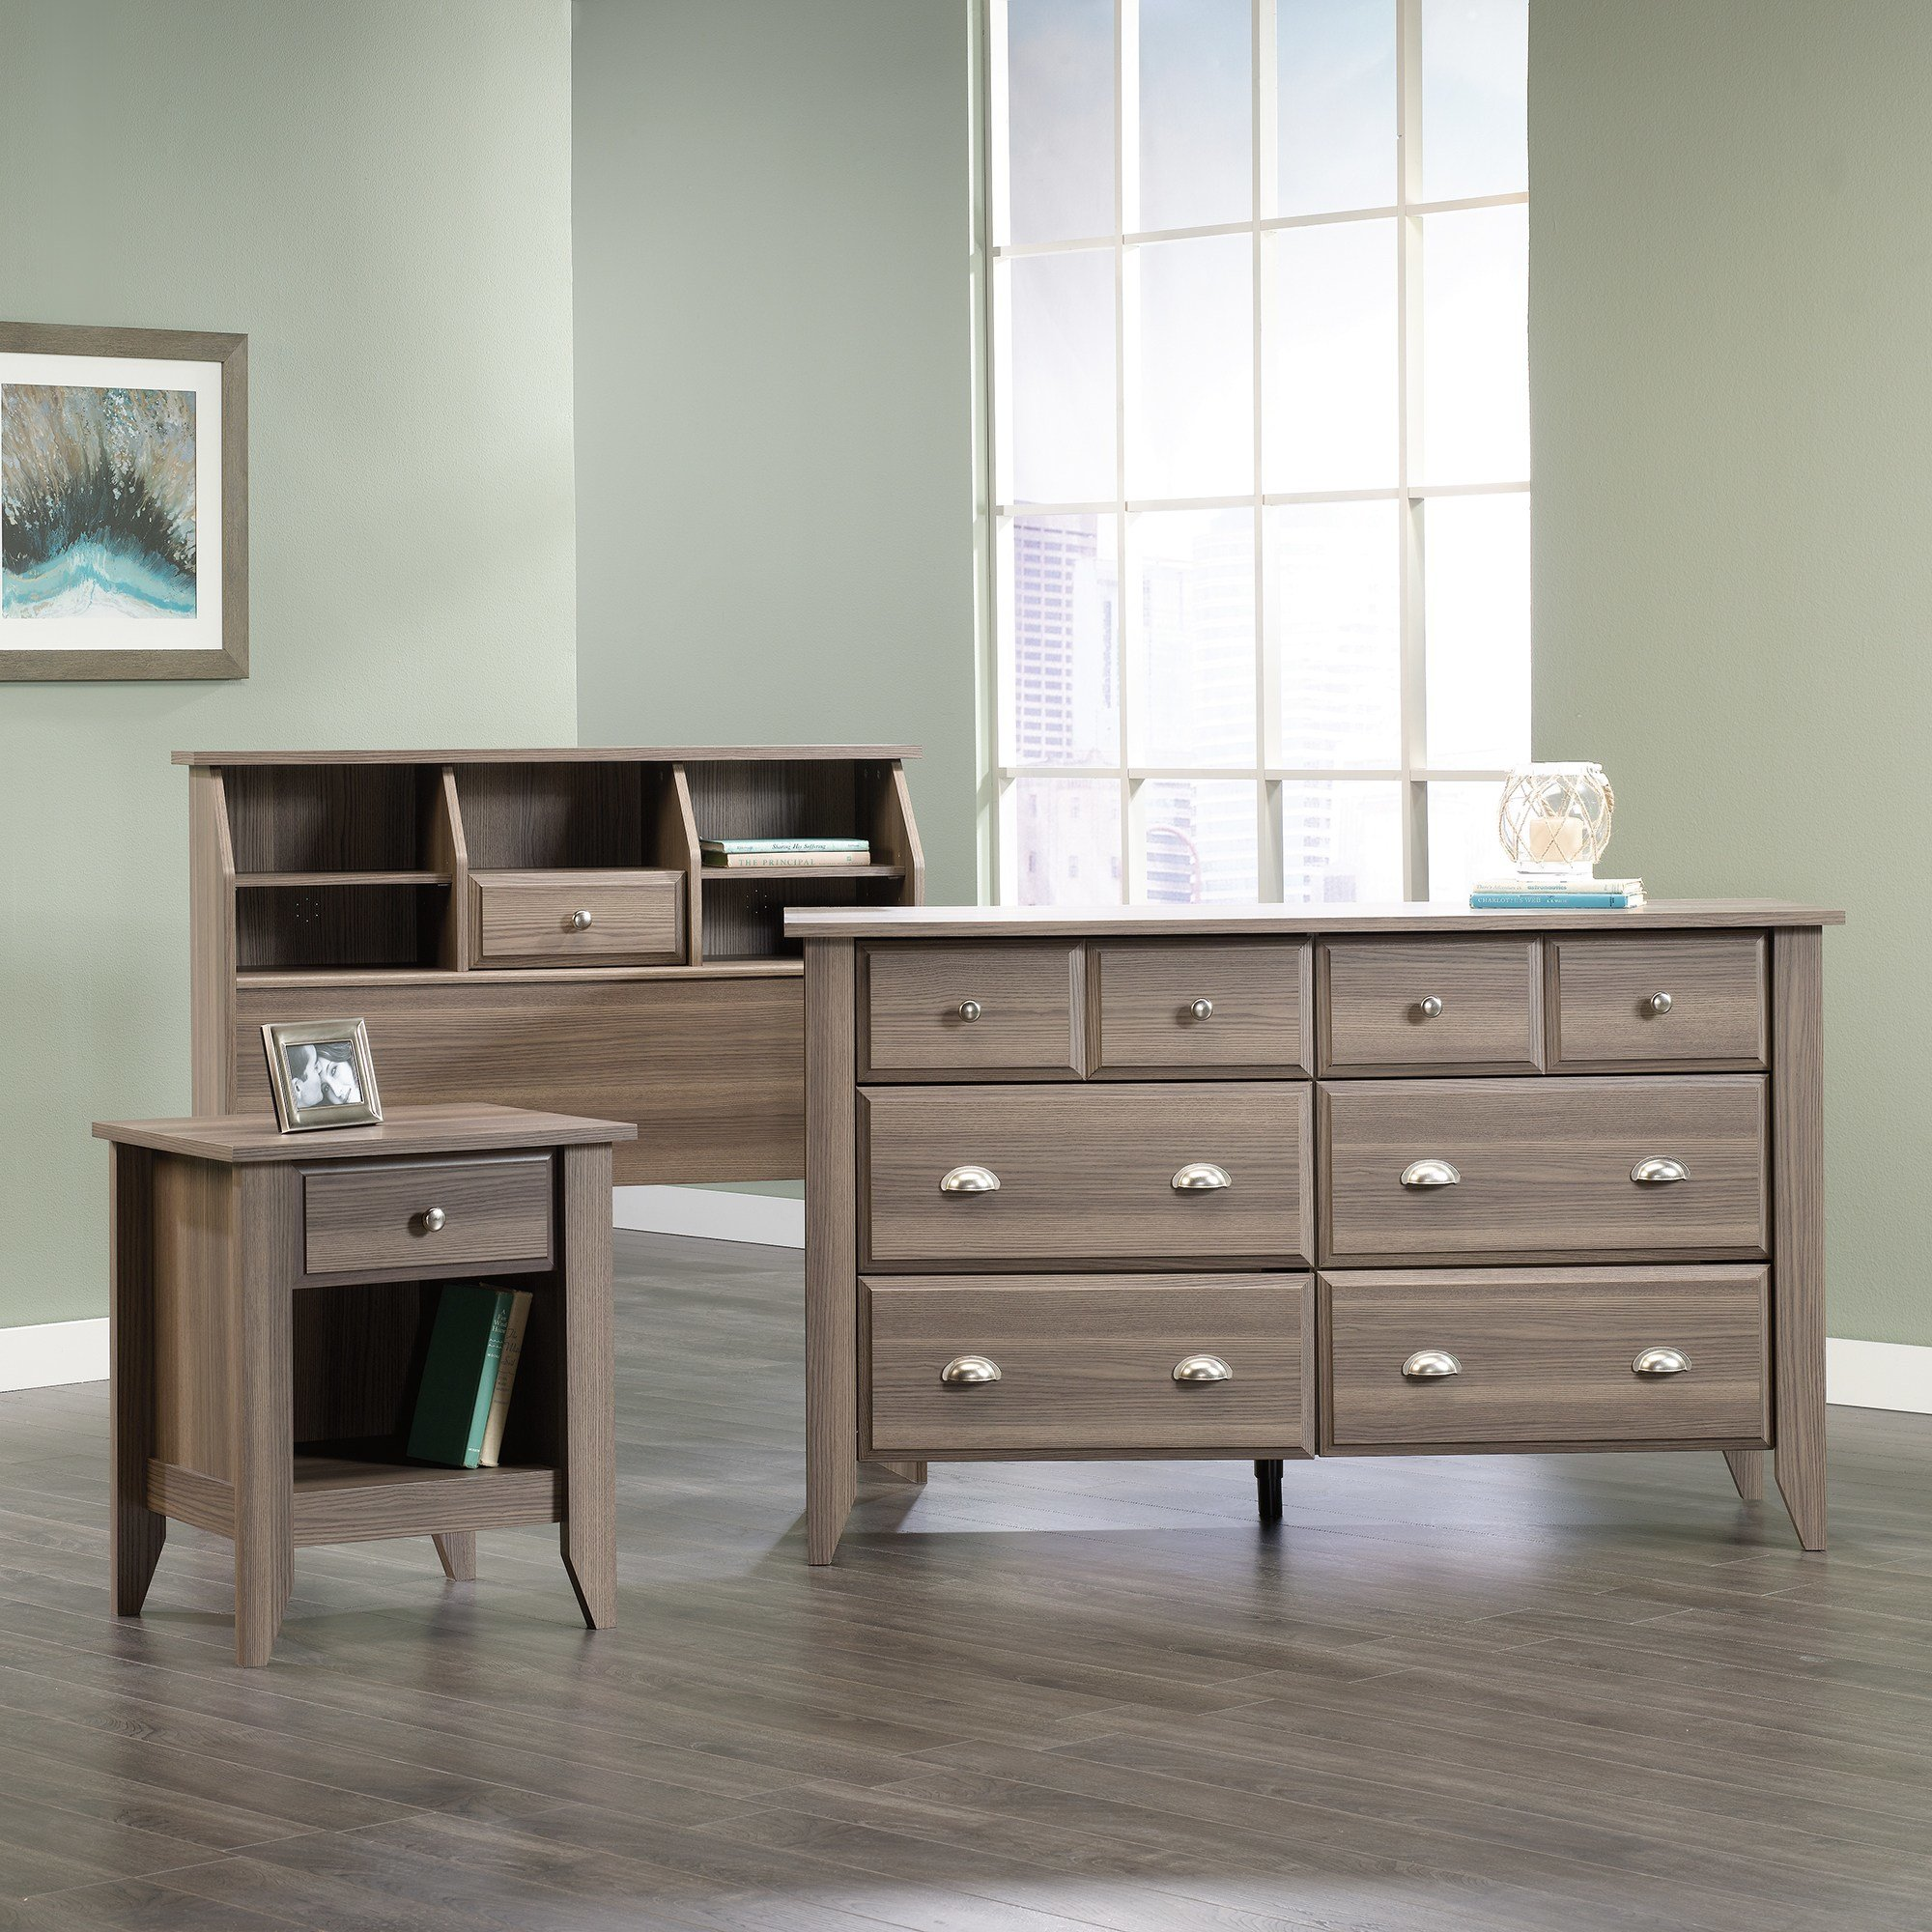 Best Shoal Creek Bedroom Set Sauder Furniture Ideas Campground With Pictures